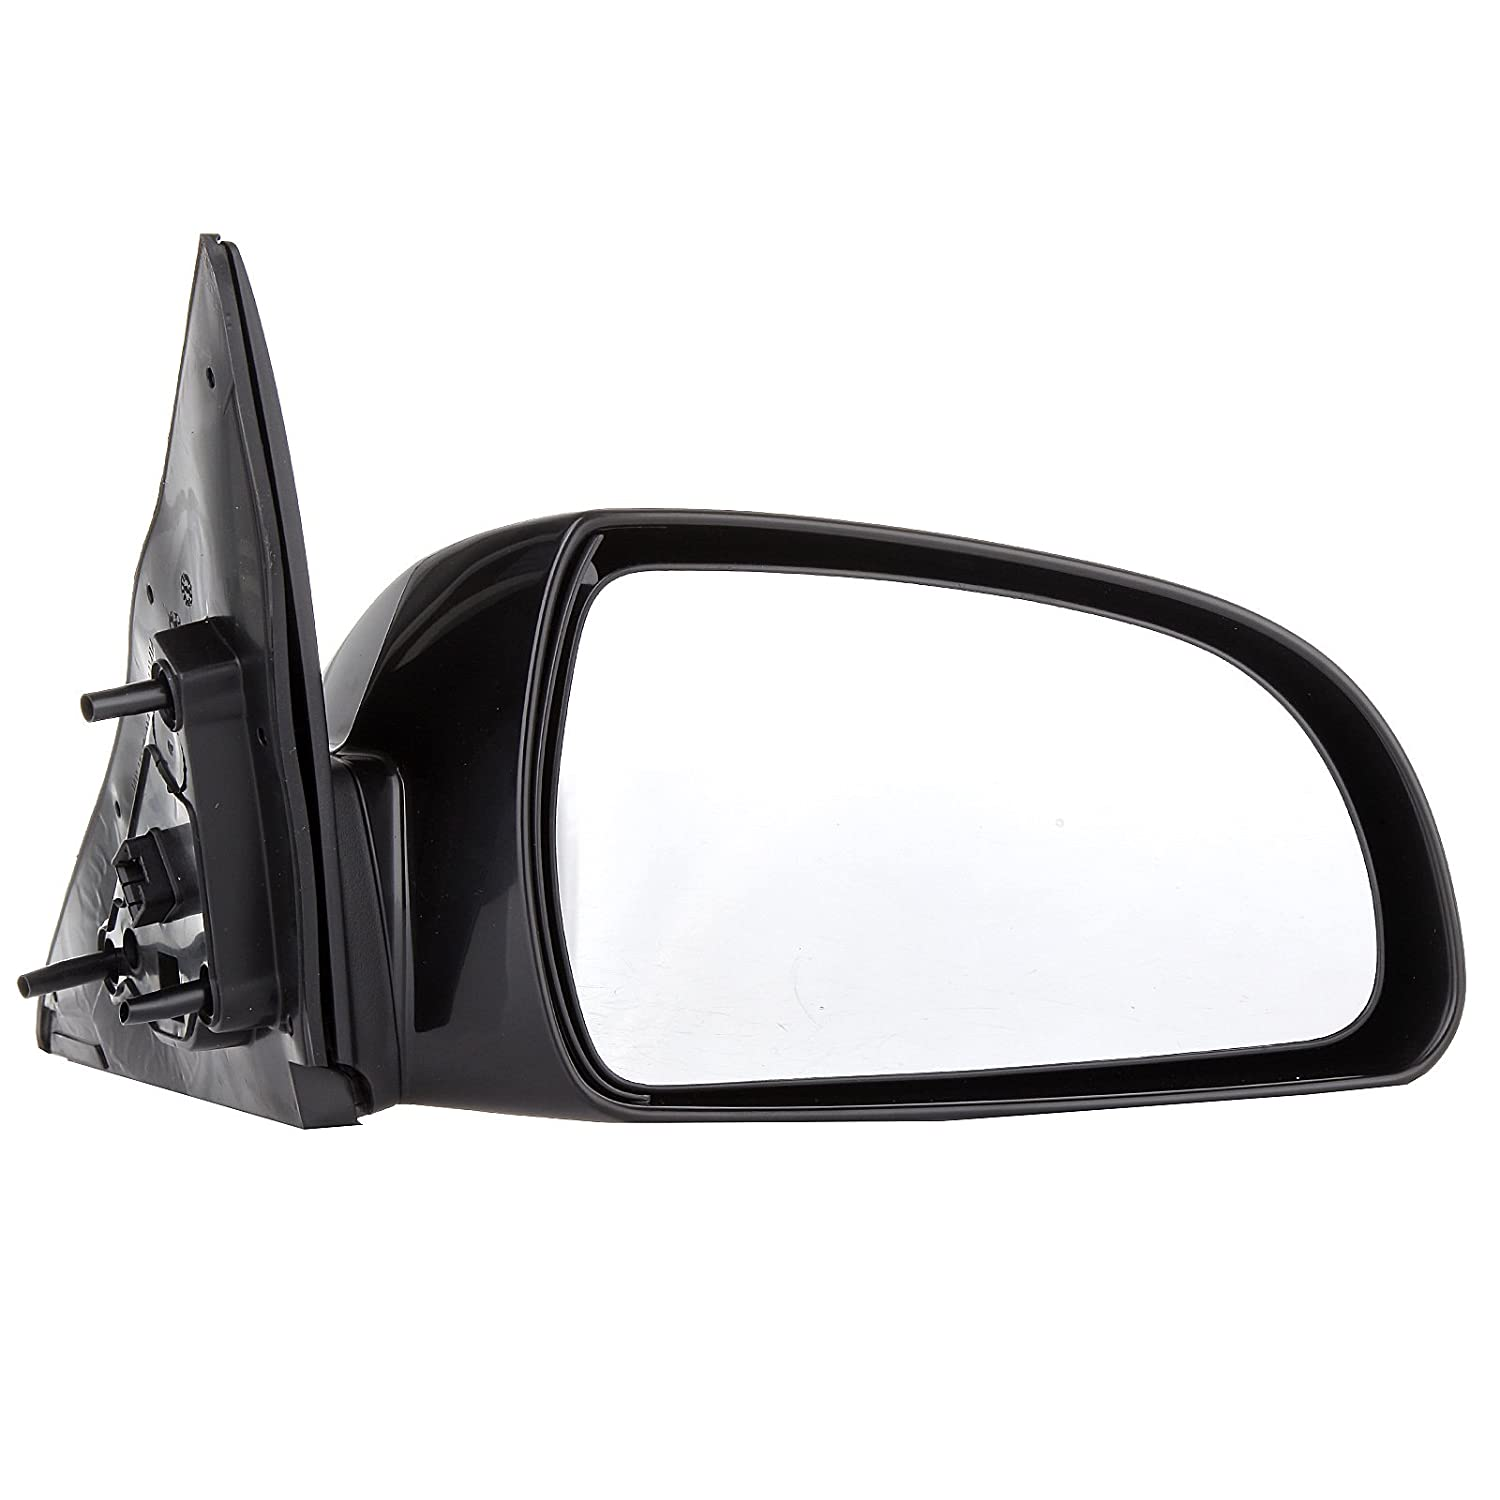 Door Mirrors, fit Hyundai SCITOO Exterior Accessories Mirrors fit 06-10 Hyundai Sonata with Power Controlling Heated Non-telesccoping Non-folding Features Passenger Side